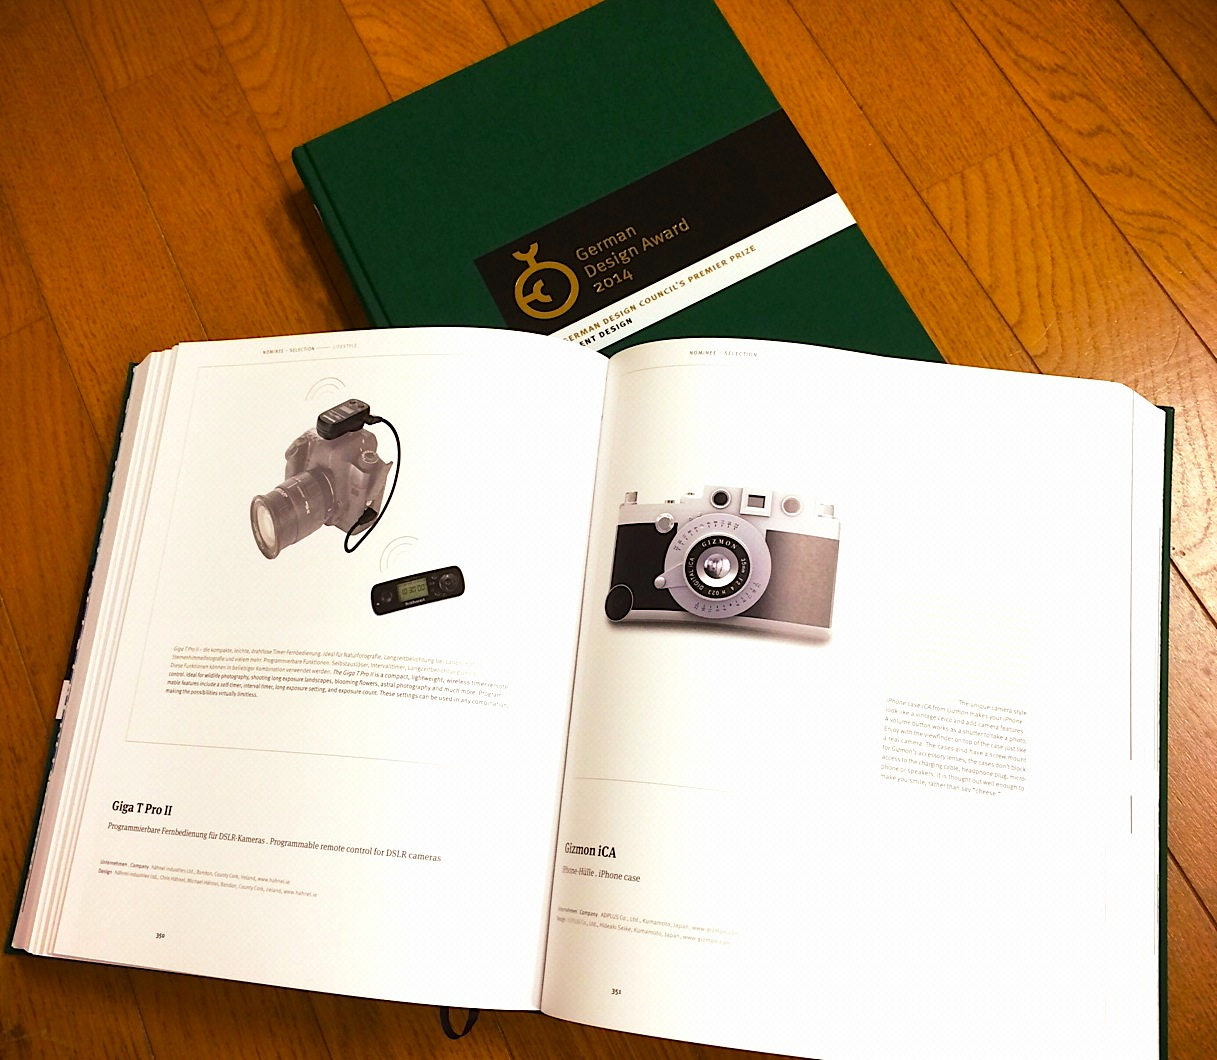 "GIZMON iCA has been introduced on the ""German Design Award 2014"" yearbook."